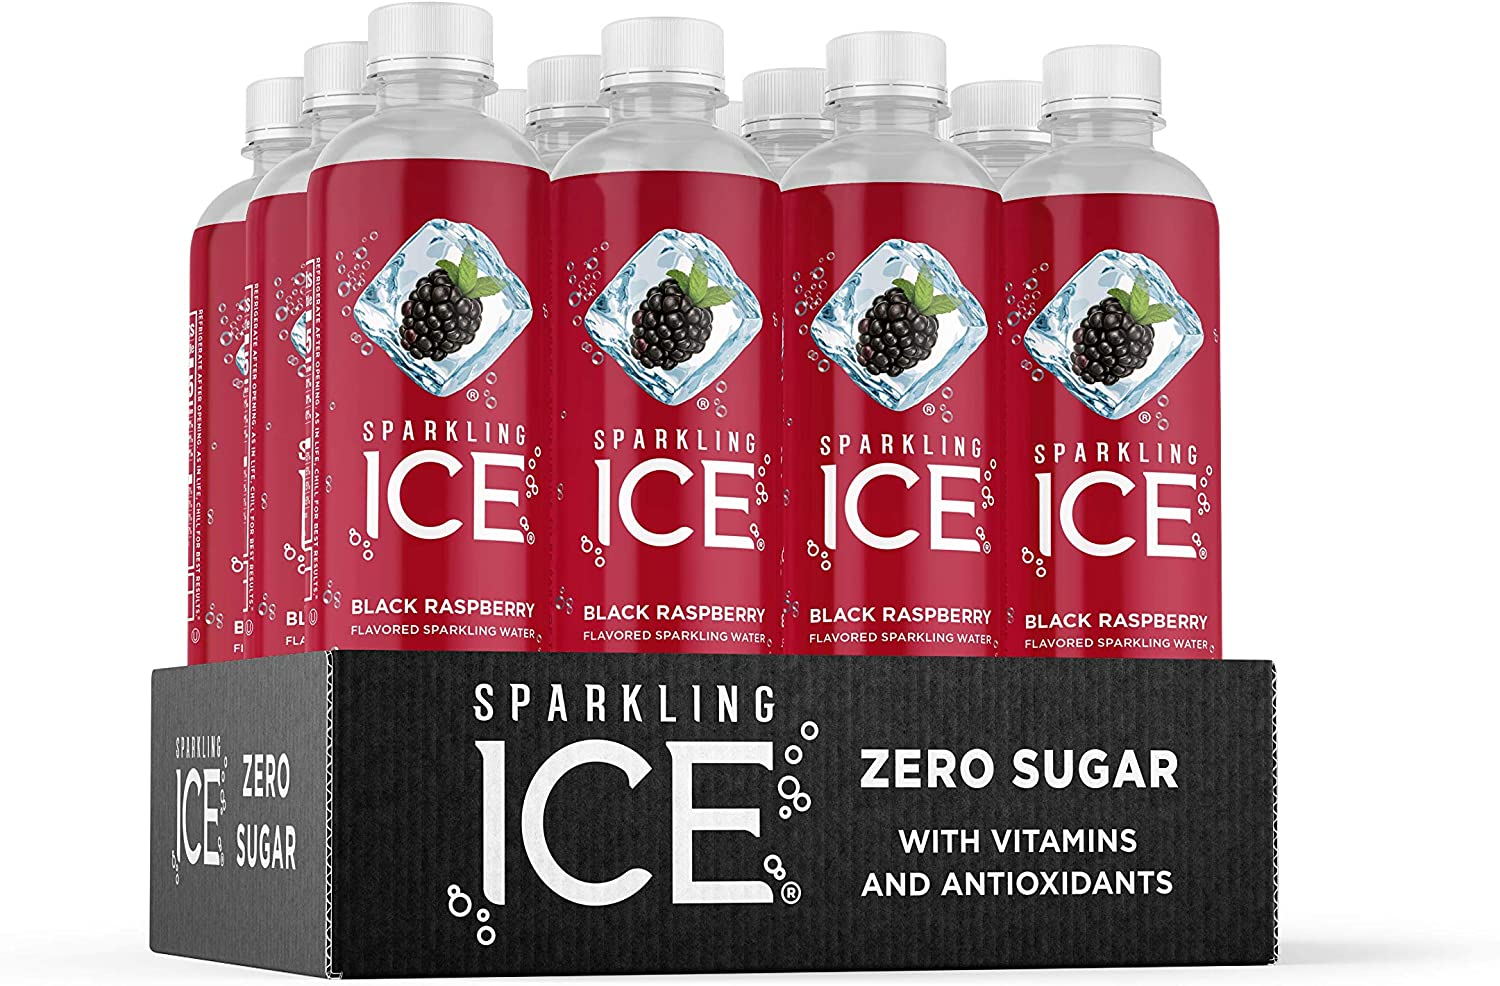 Sparkling Ice, Black Raspberry Sparkling Water, with Antioxidants and Vitamins, Zero Sugar